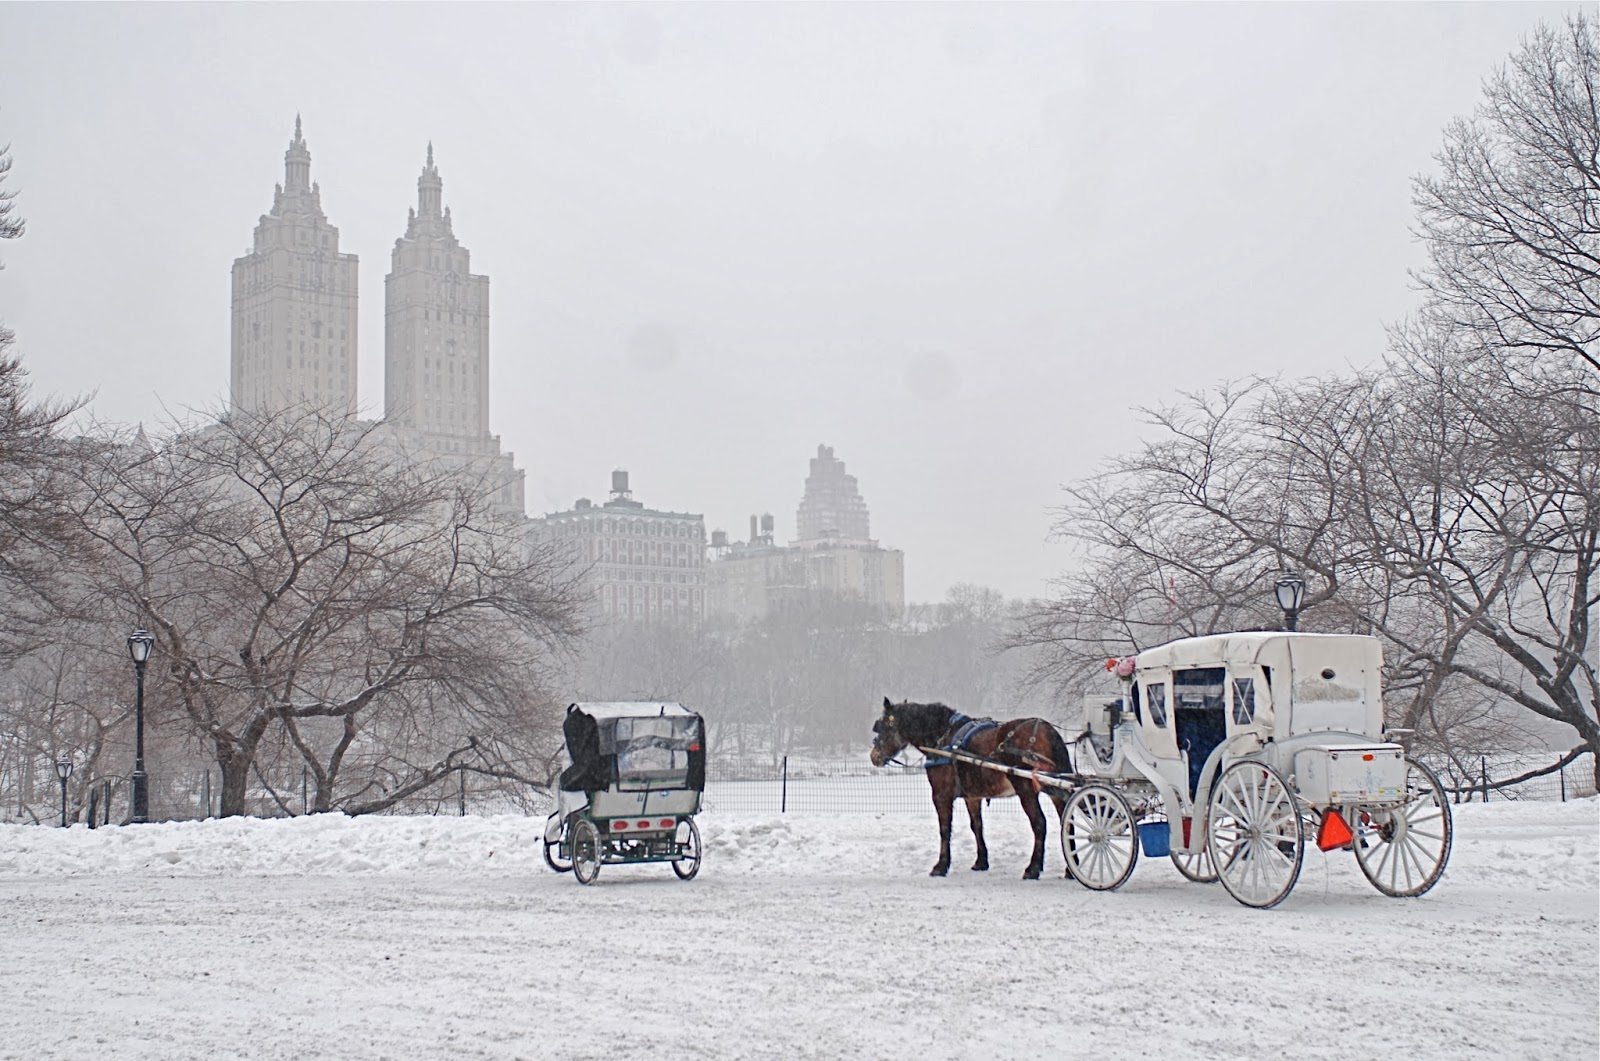 nyc nyc iconic horse drawn carriage rides in central park